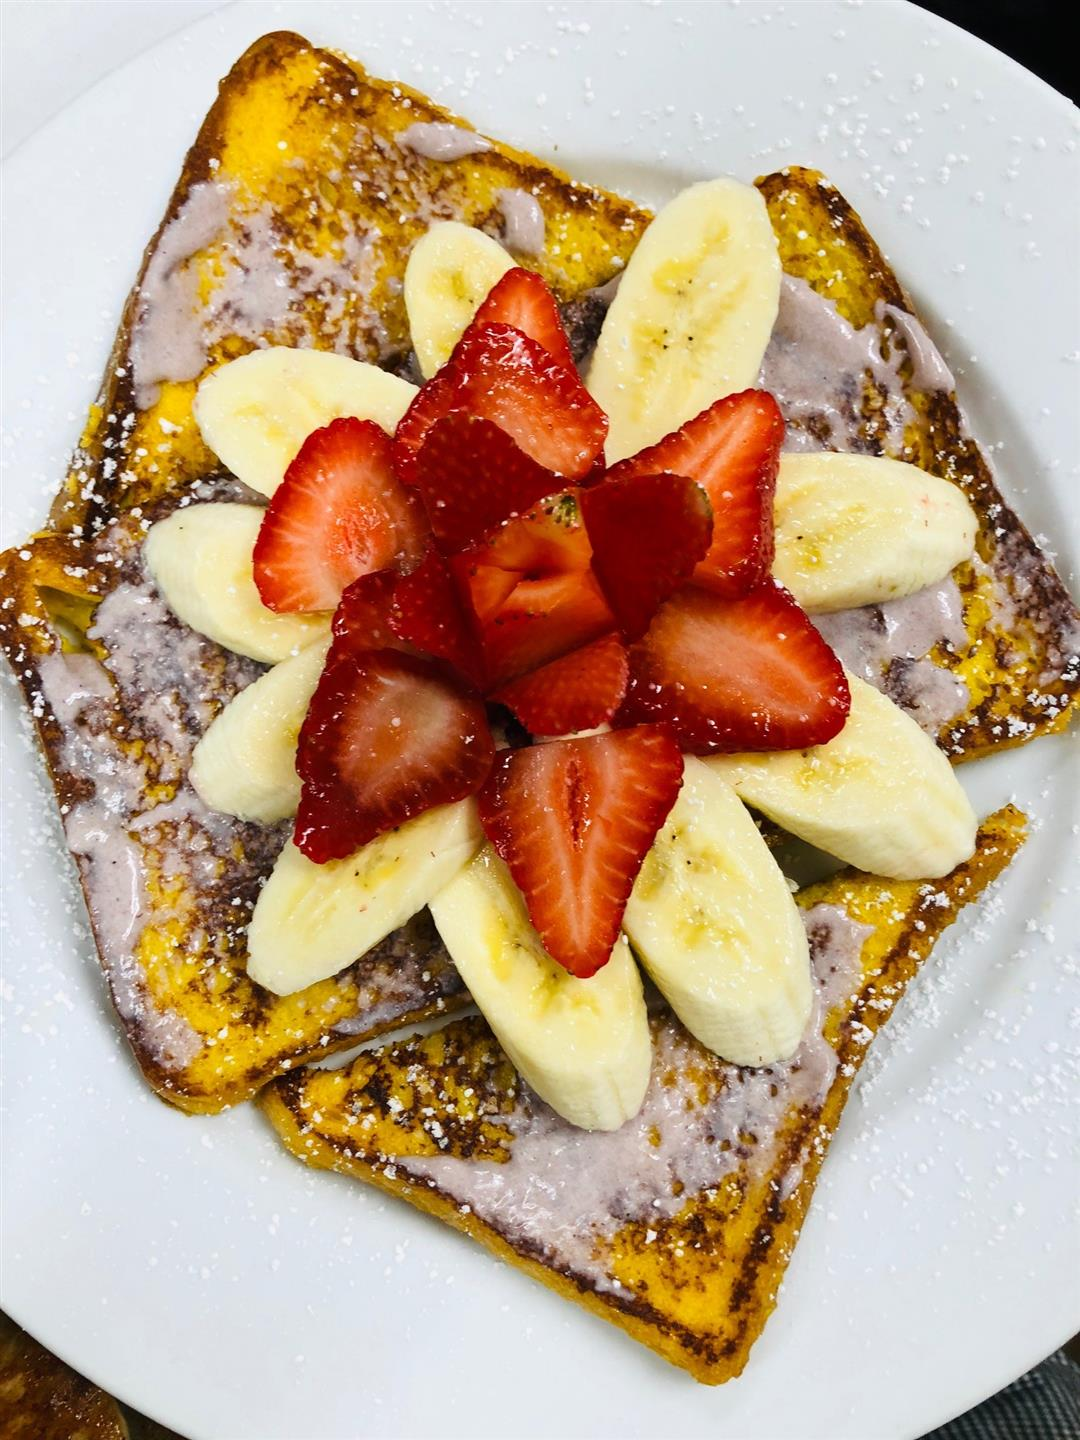 French toast topped with bananas, strawberries and powdered sugar